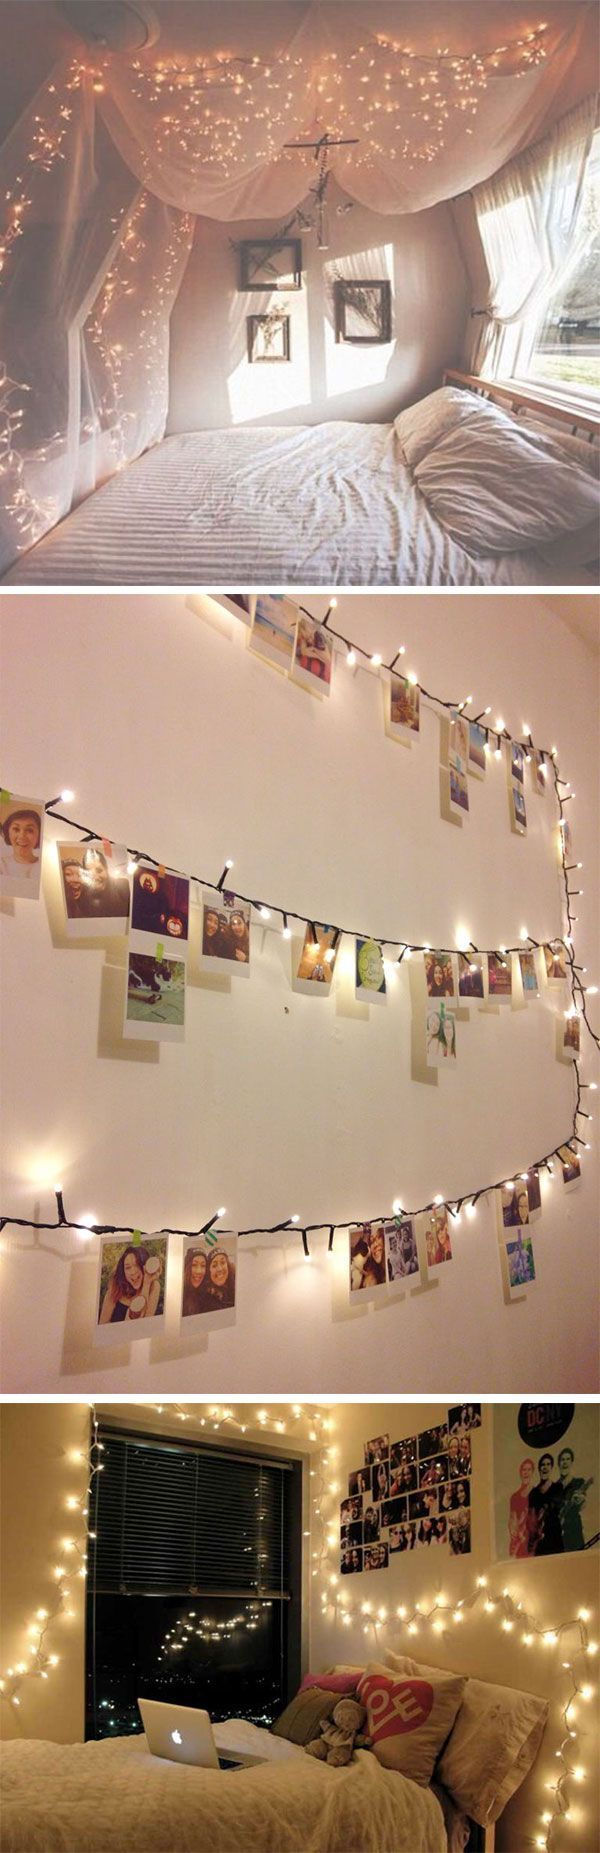 awesome 13 ways to use fairy lights to make your home look magical by http://www.tophome-decorations.xyz/bedroom-designs/13-ways-to-use-fairy-lights-to-make-your-home-look-magical/